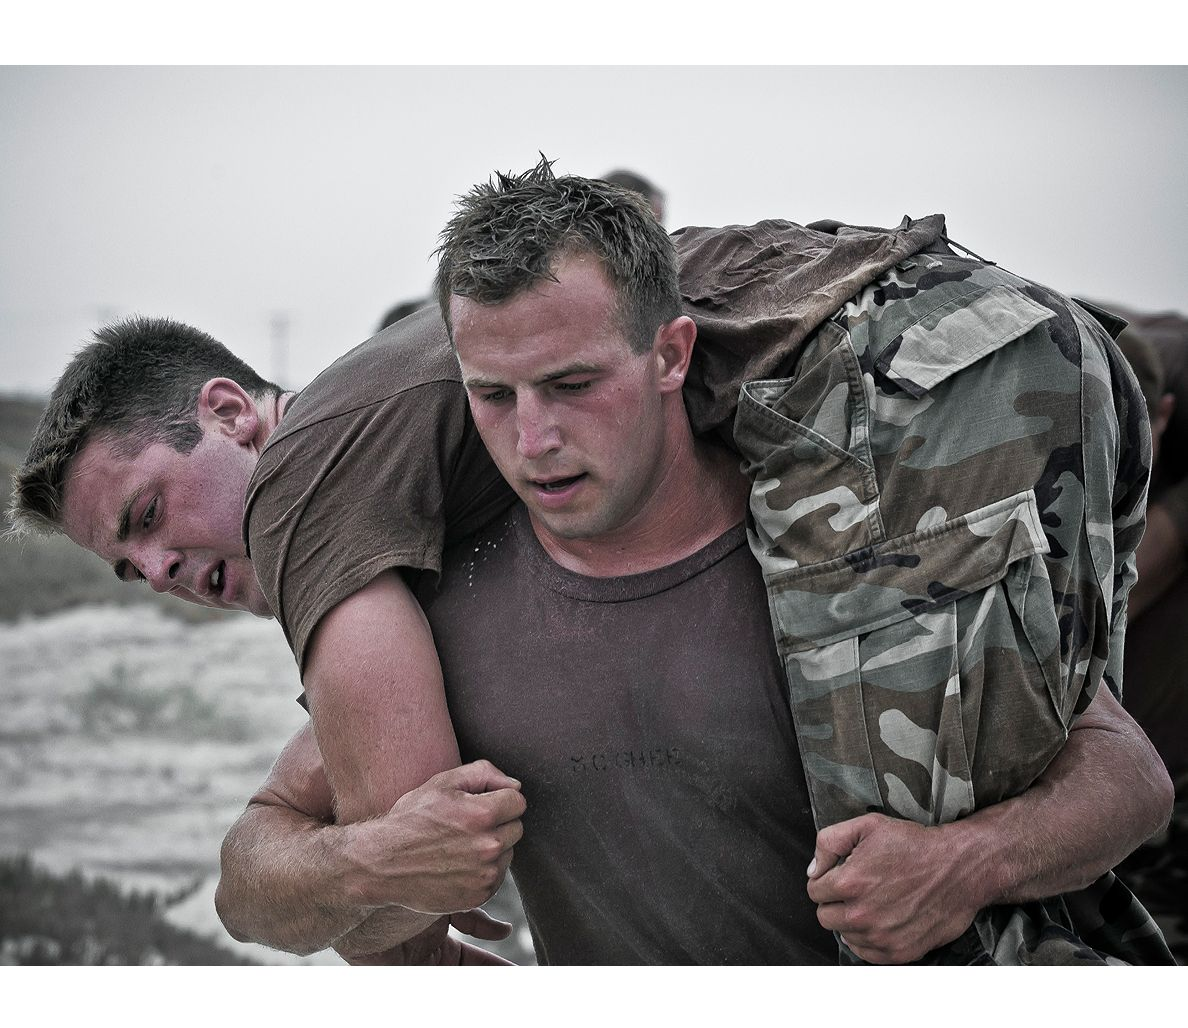 The Most Brutal Obstacles That Elite Military Guys Must